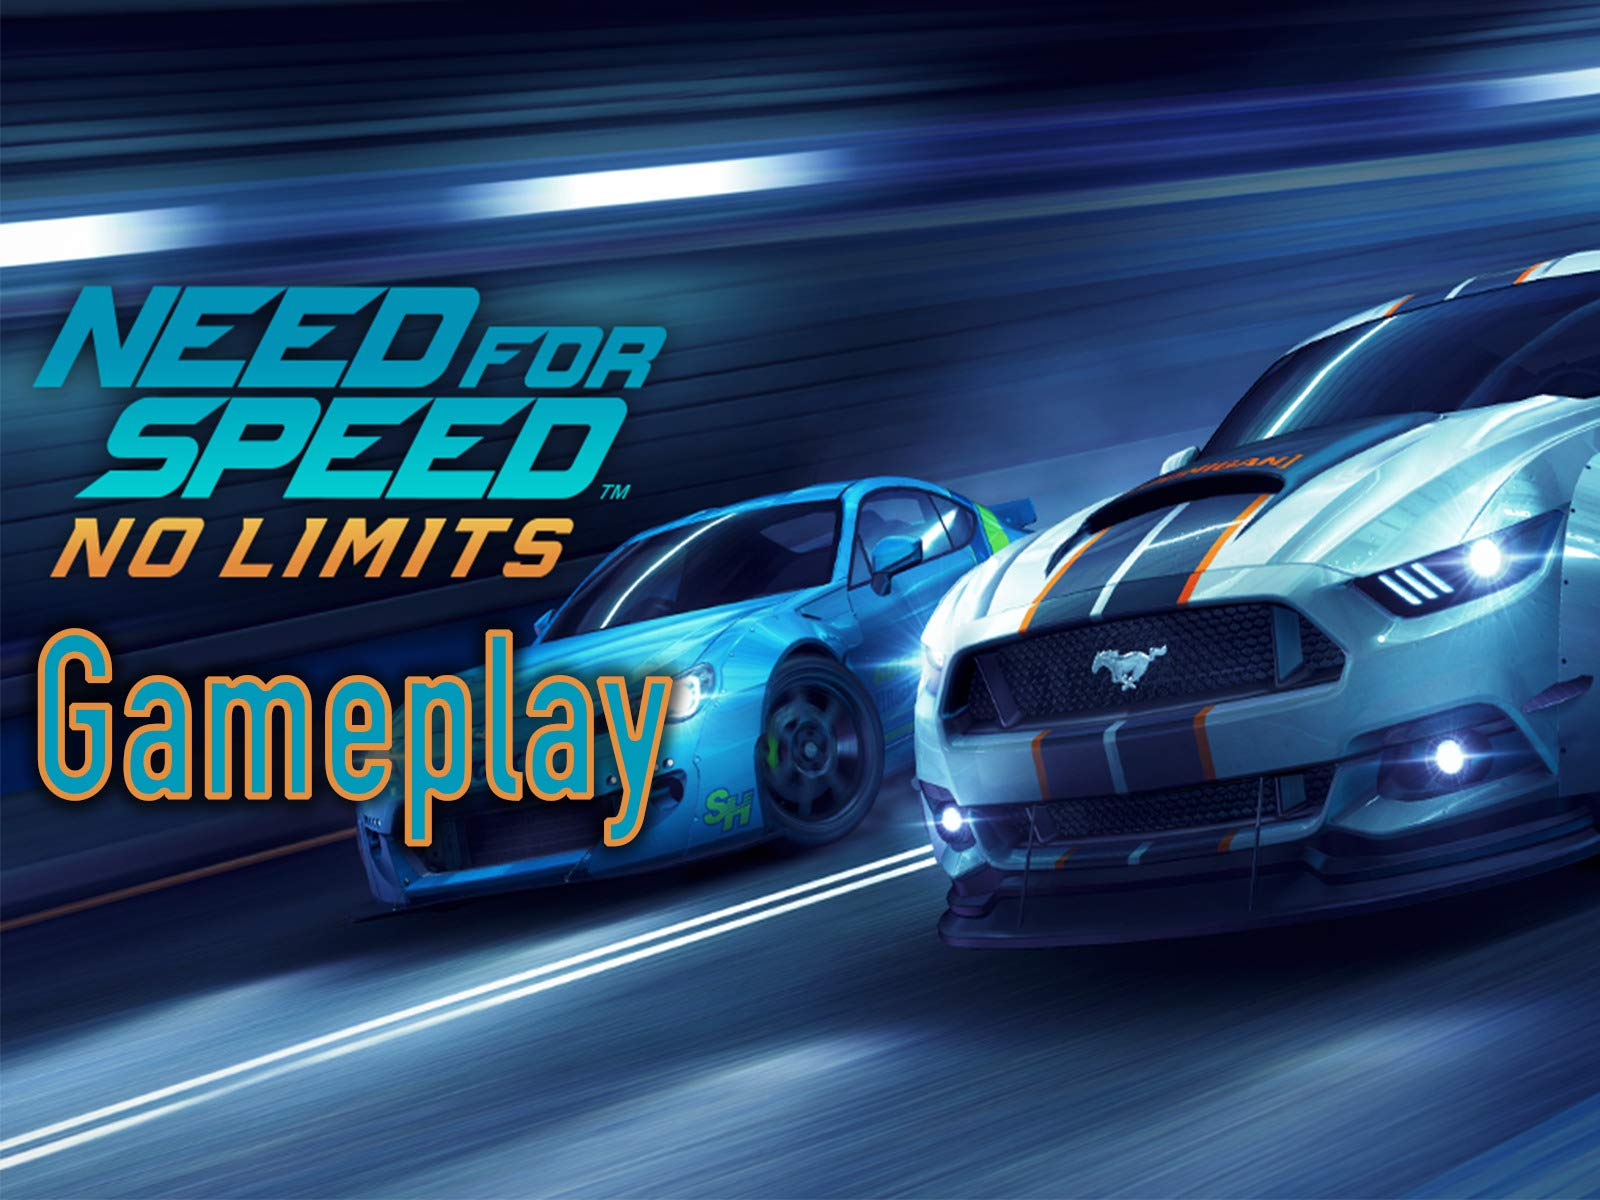 Amazon com: Watch Need For Speed No Limits Gameplay | Prime Video